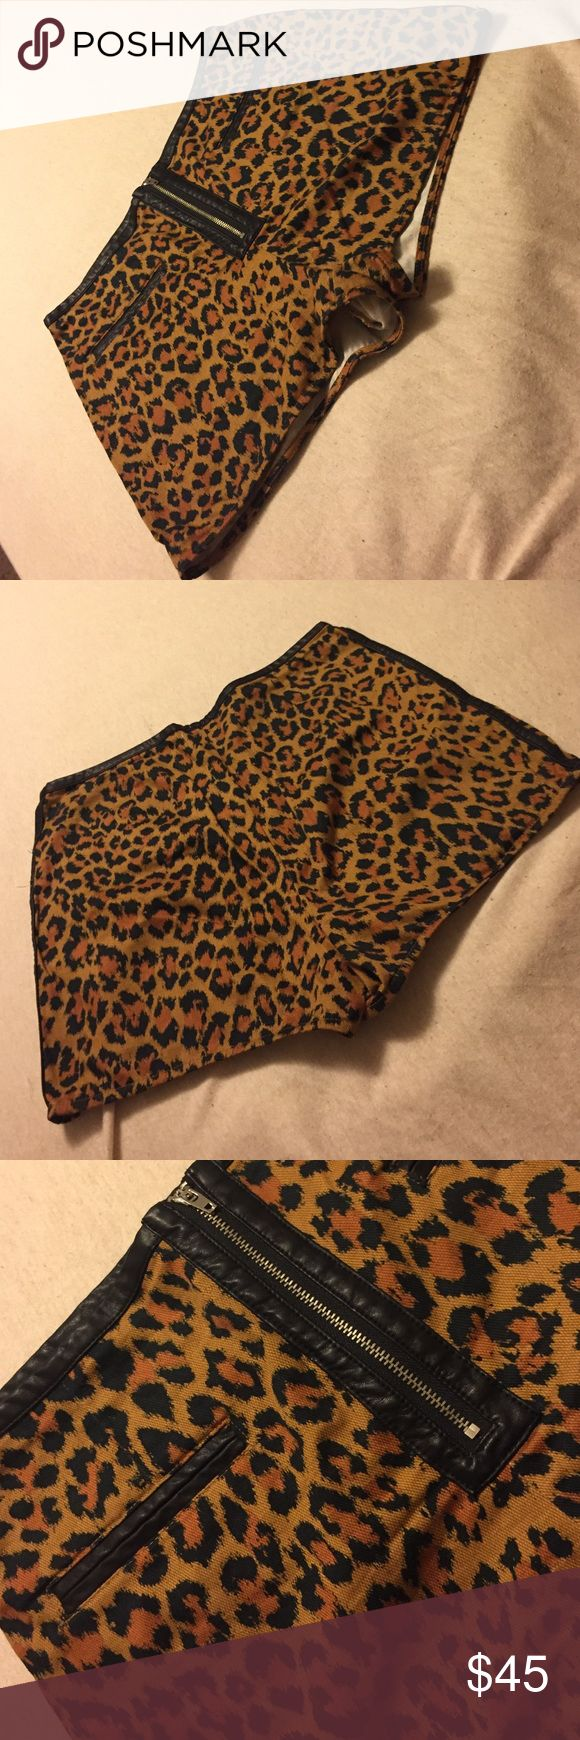 Leopard High Waist Shorts Leopard High Waist Shorts. My favorite shorts..it pains me to sell them. ☹️😭 Great for the summer or winter time. silence + noise Shorts